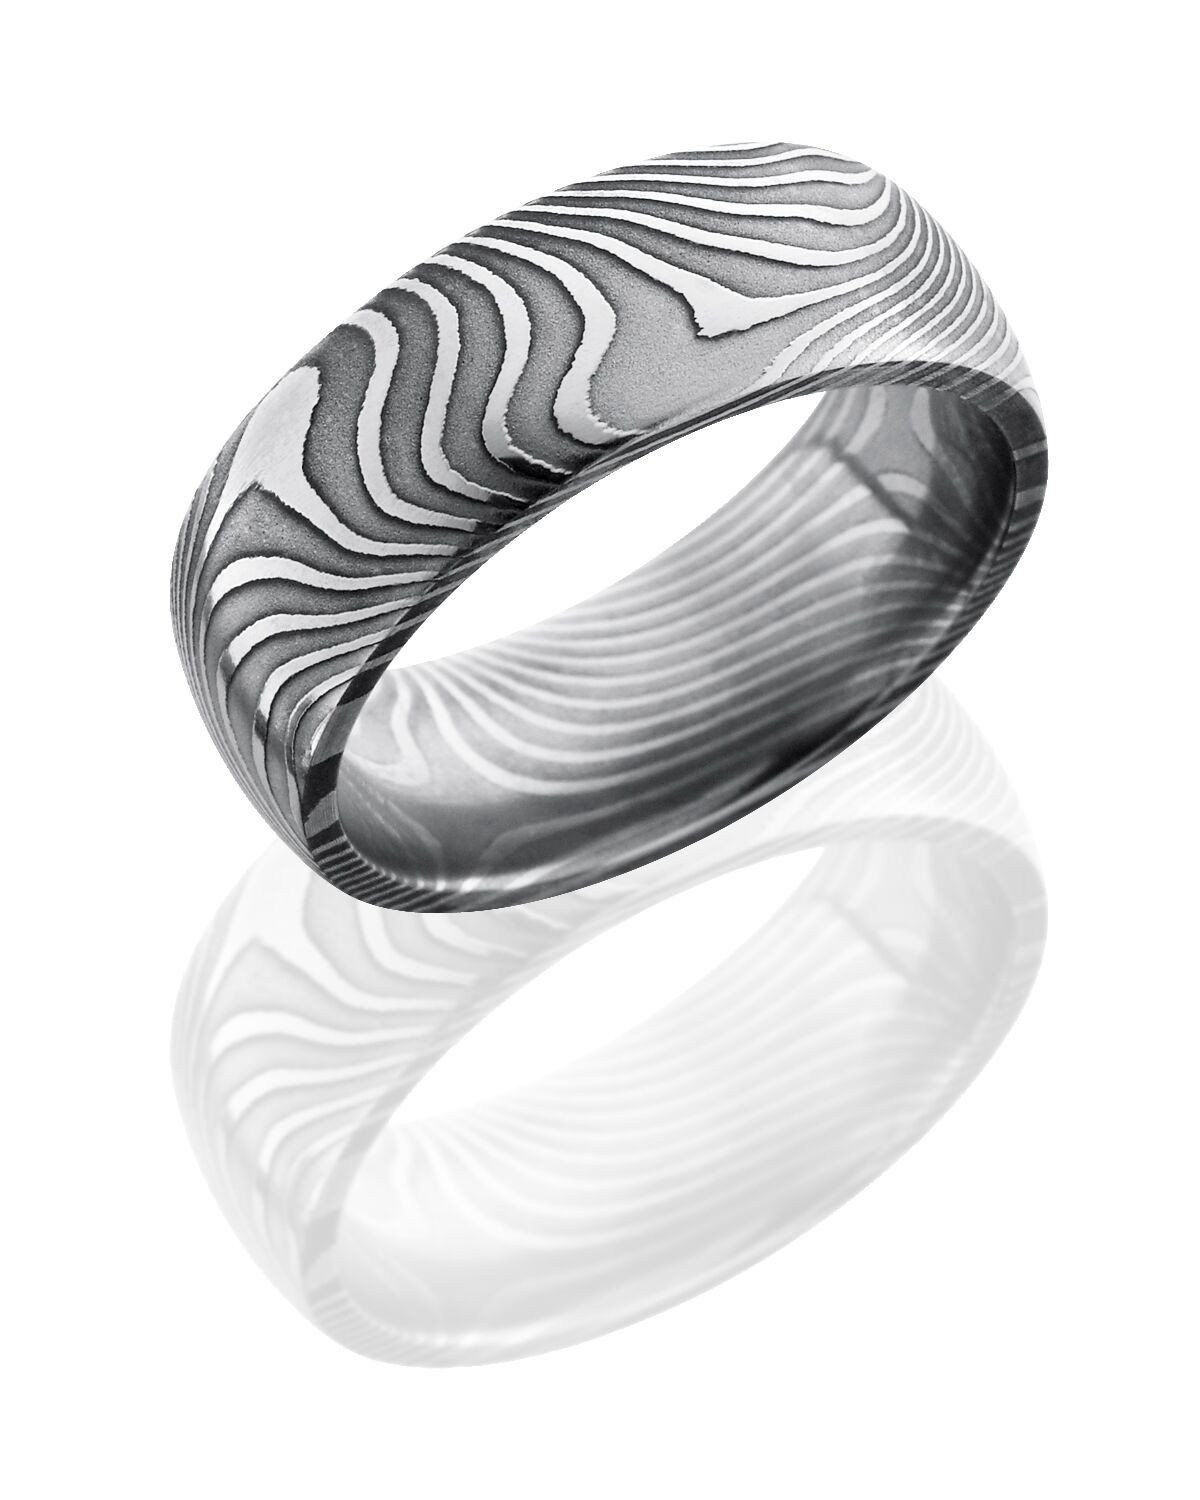 Damascus Steel Domed Band Ring with Flat Twist Pattern   Damascus ...